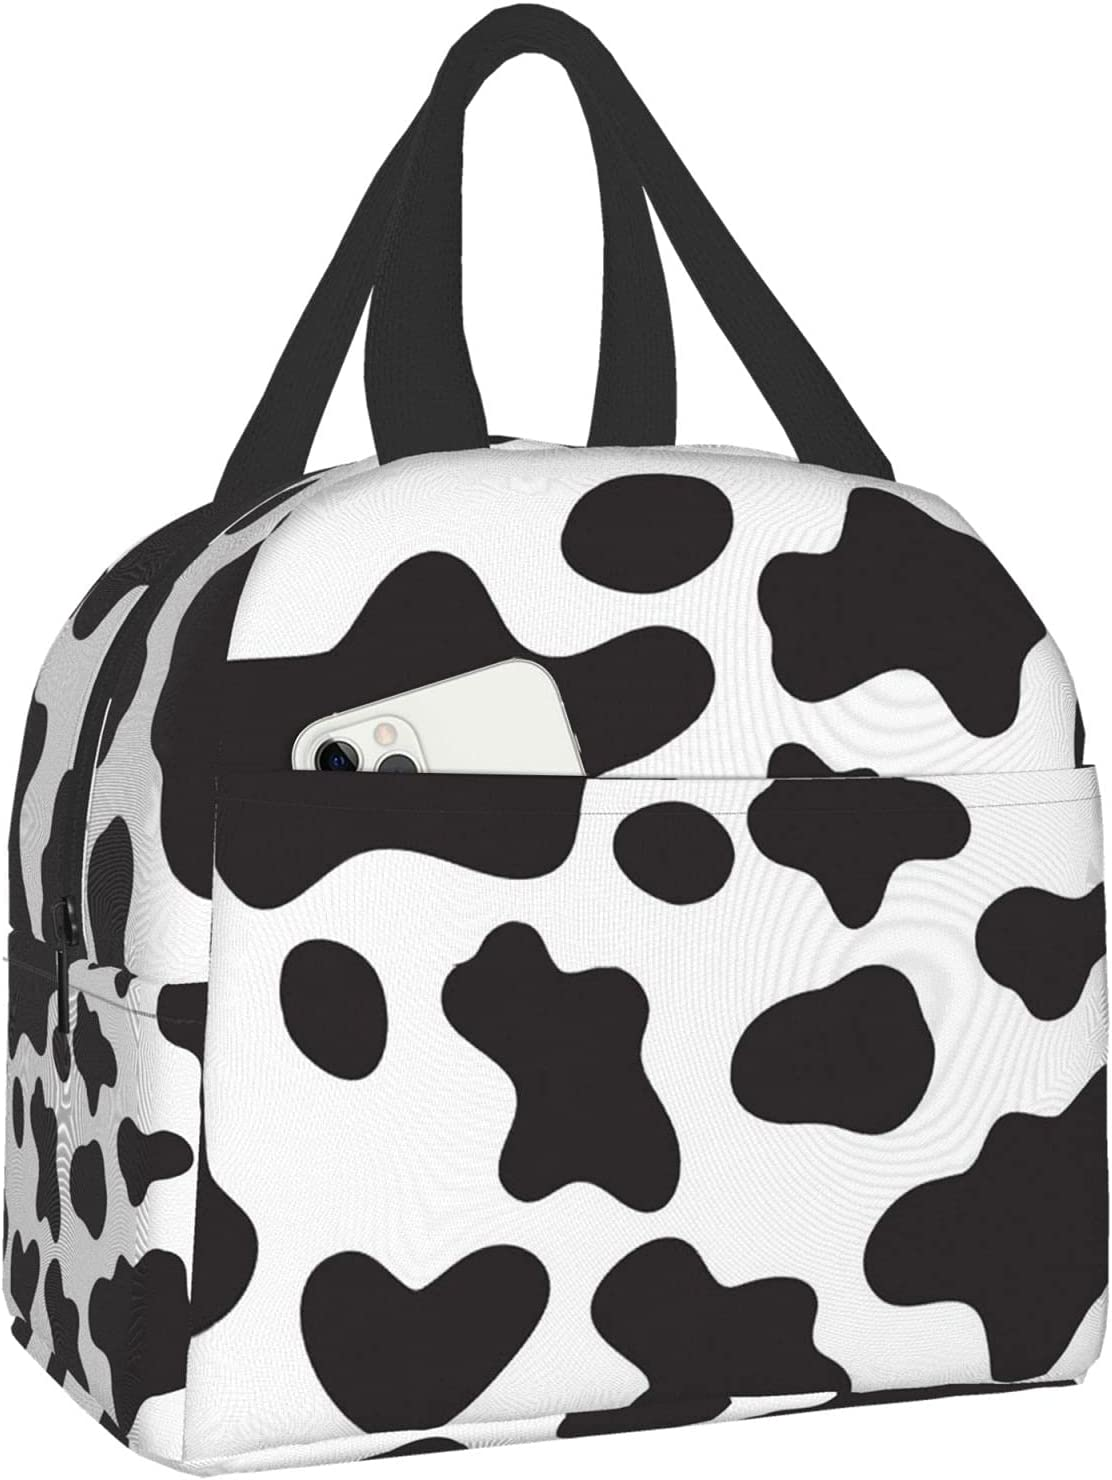 Gocerktr Cow Print Lunch Bag Reusable Lunch Box Waterproof Thermal Tote Bag Lunch Container Cute Cooler Bag for Women Men Work/Travel/Picnic